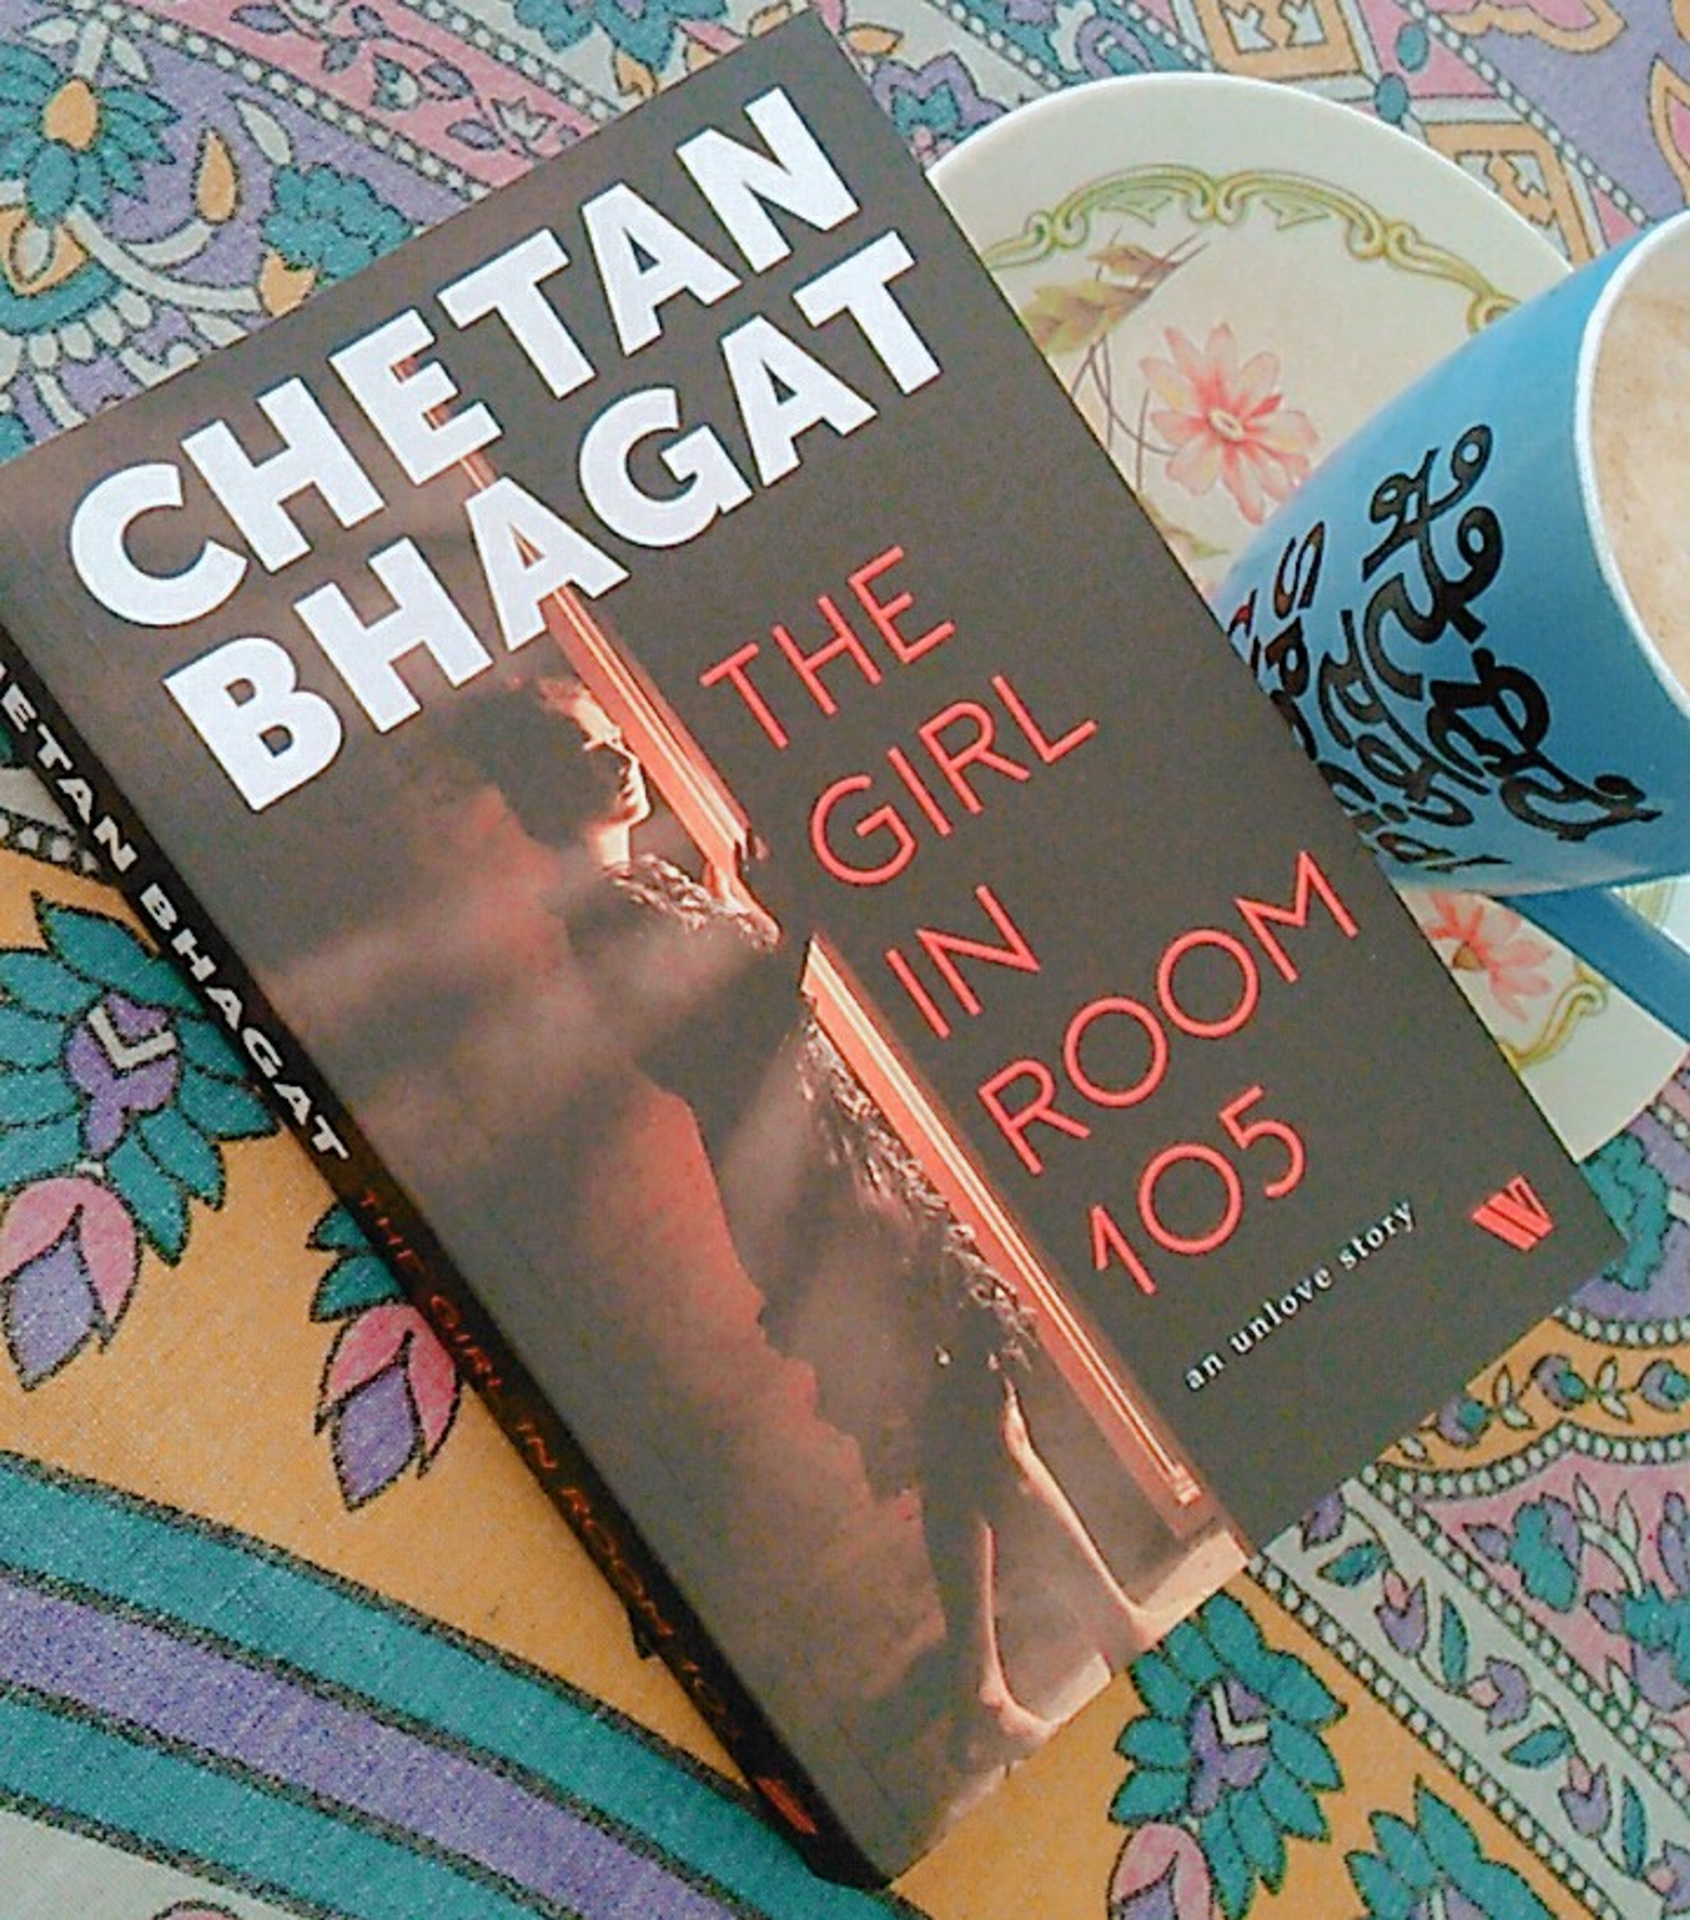 The Girl In Room 105: Chetan Bhagat Has Given His Best Book image